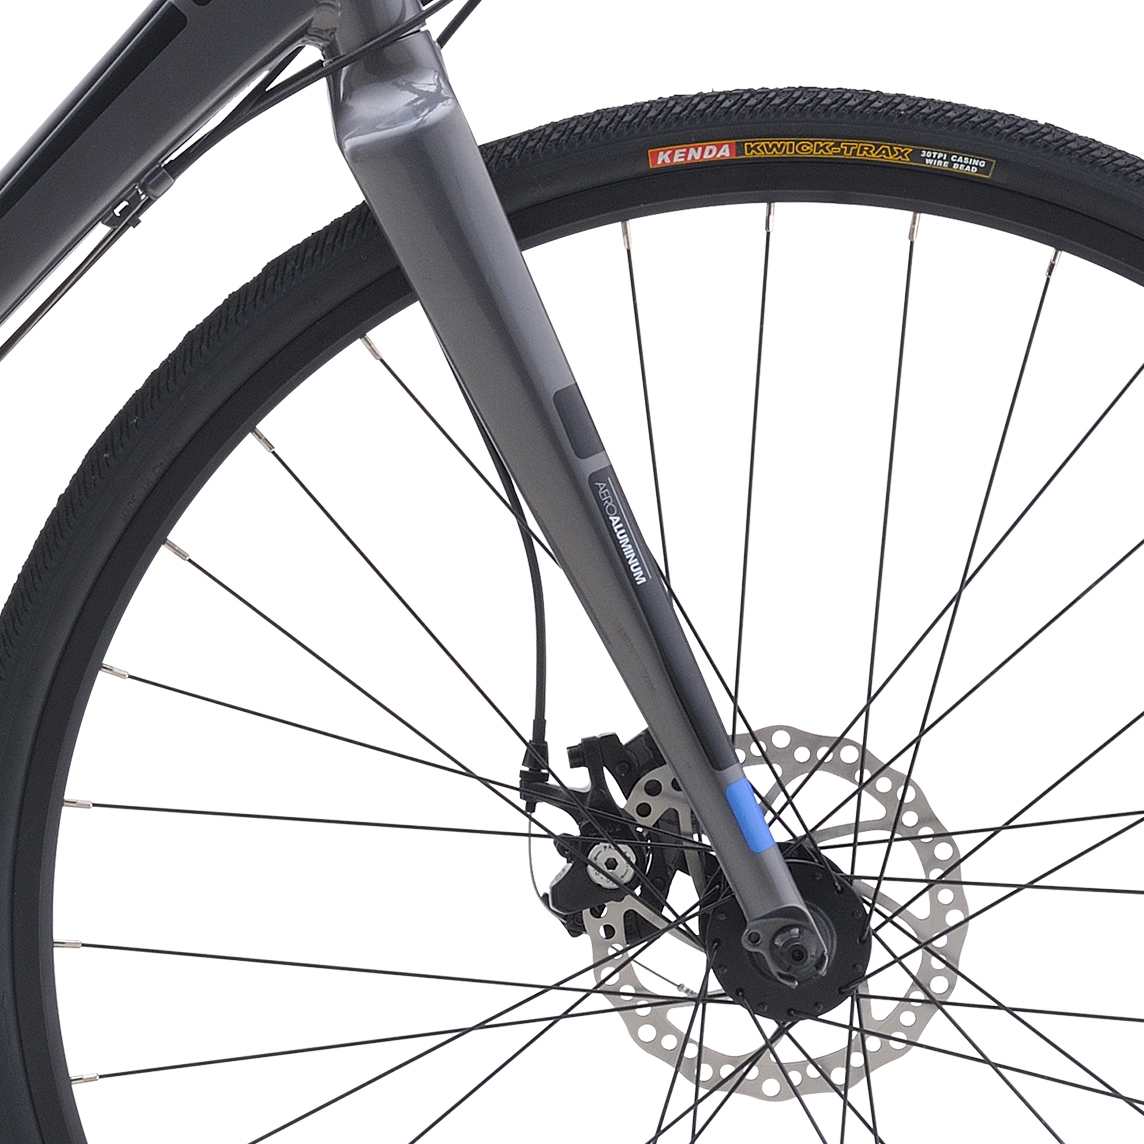 DB16 Insight3 DkGry FORK